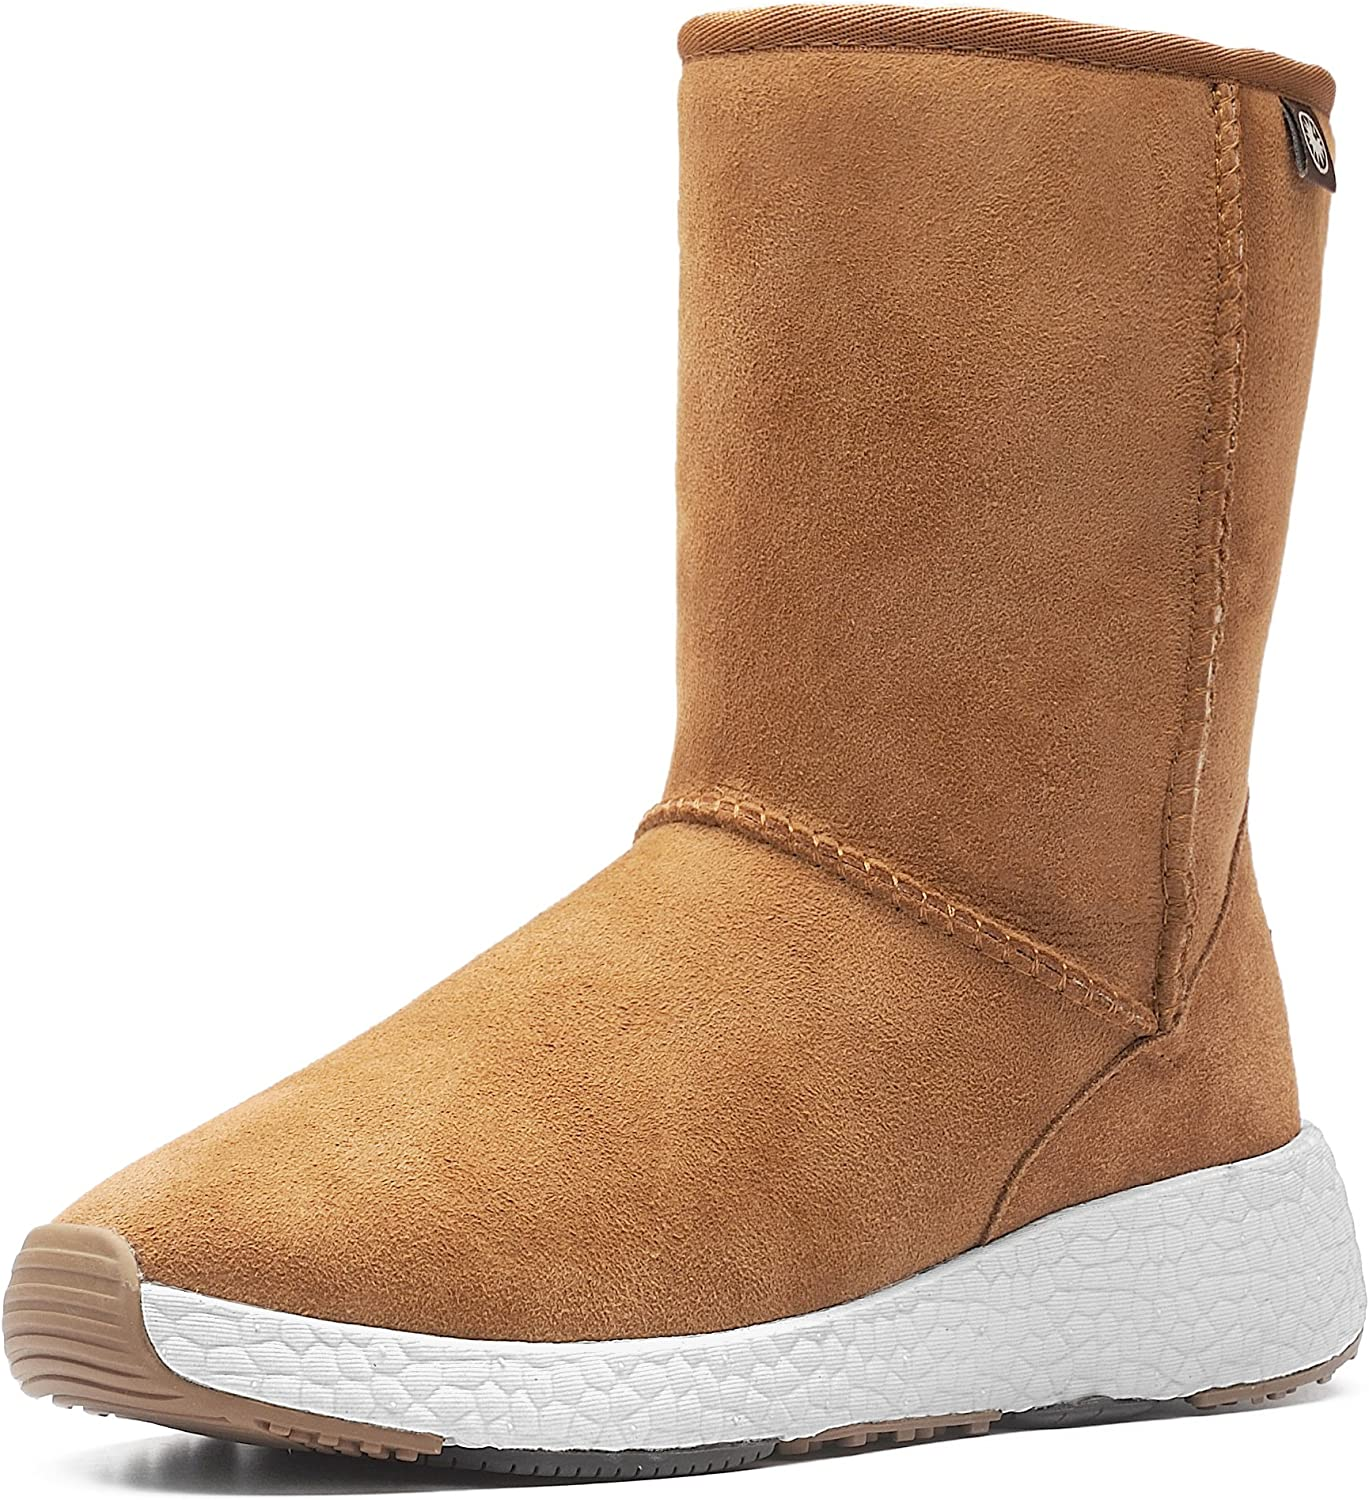 Aumu Womens Fashion Shearling Ankle Bootie Snow Boots Winter Boots